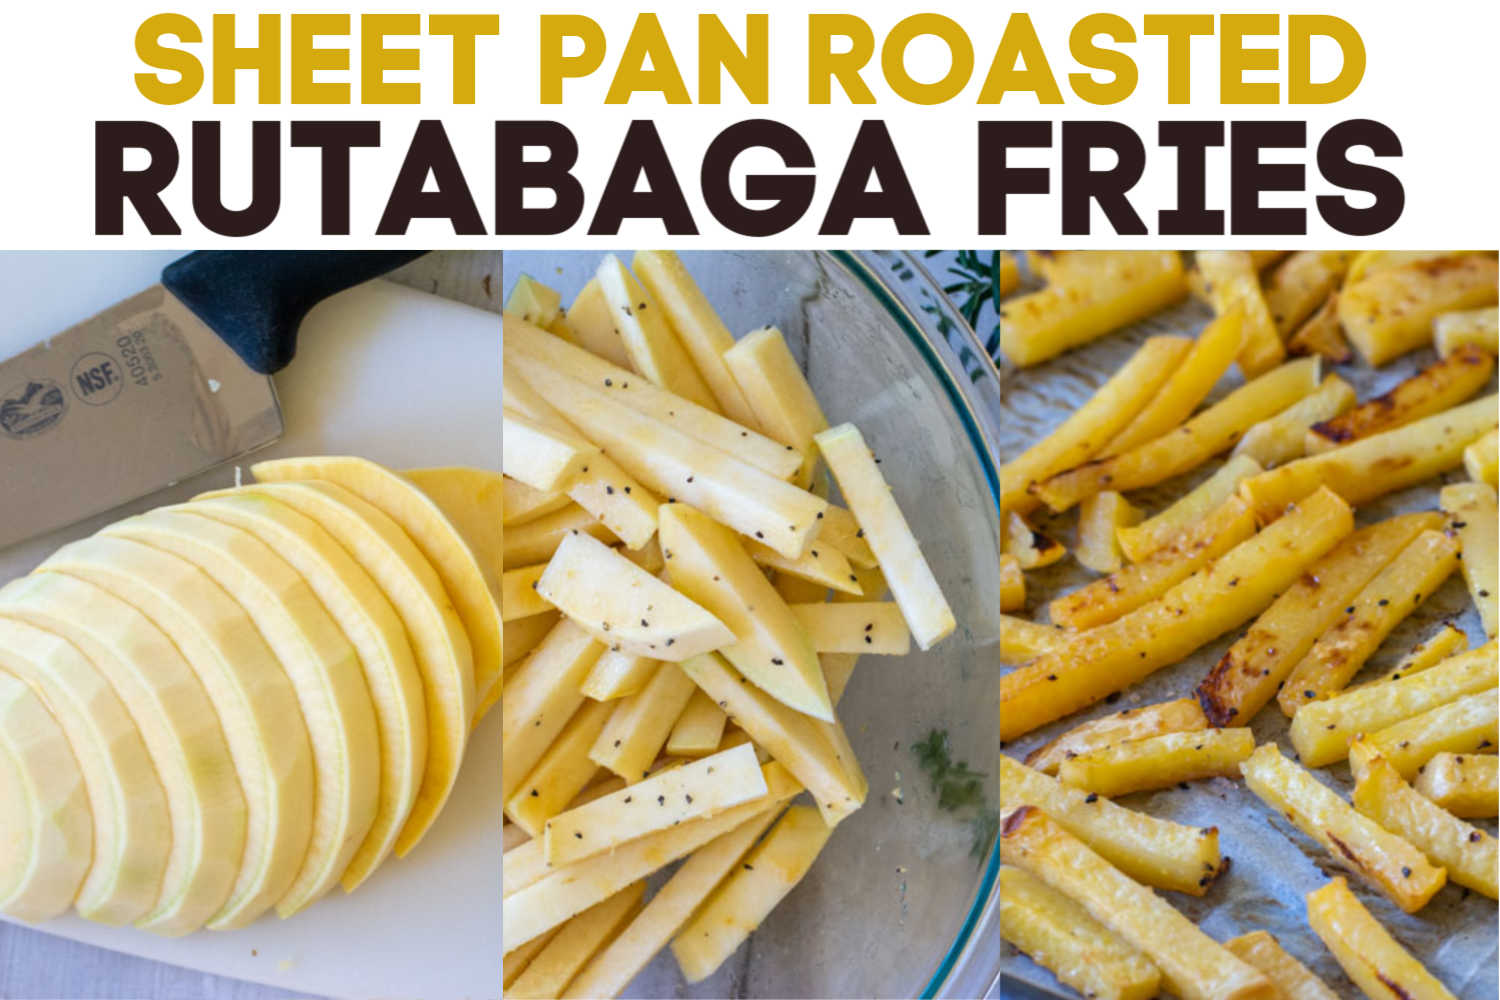 Three Simple steps to make oven roasted rutabaga fries. Three picture process shots showing the slicing, the seasoning and the roasting